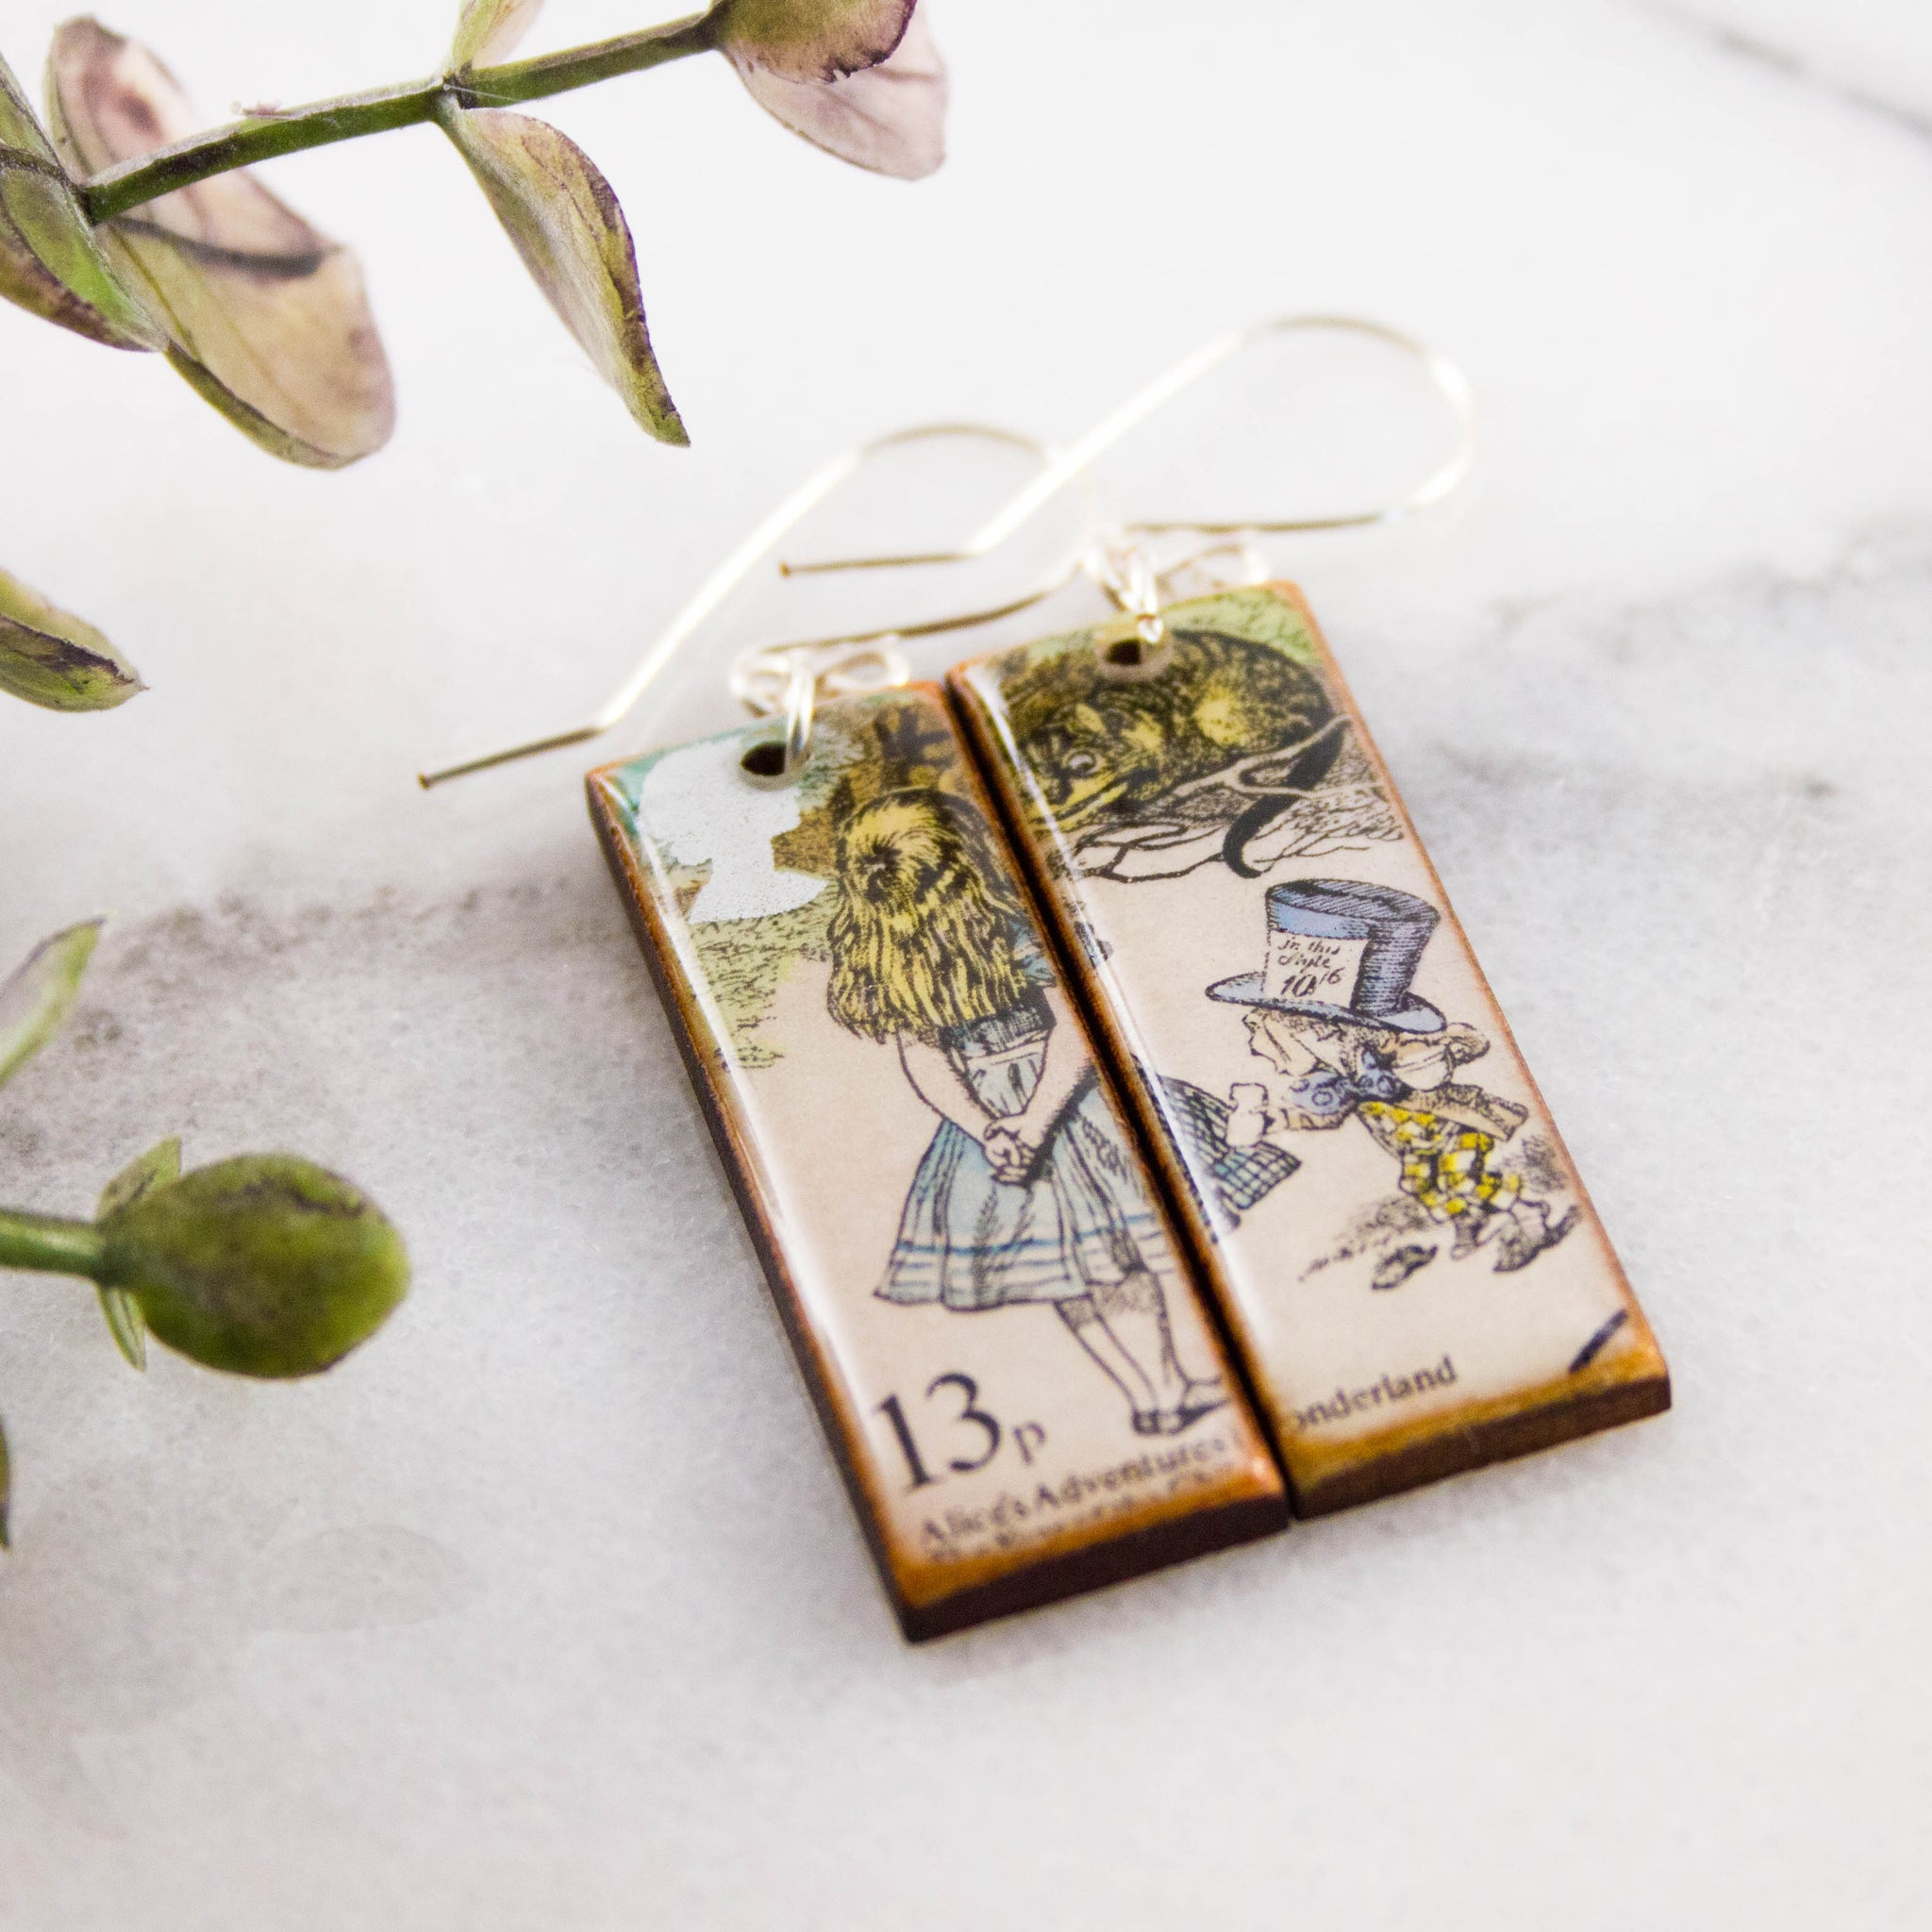 GREAT BRITAIN- Vintage Alice in Wonderland Postage Stamp Earrings